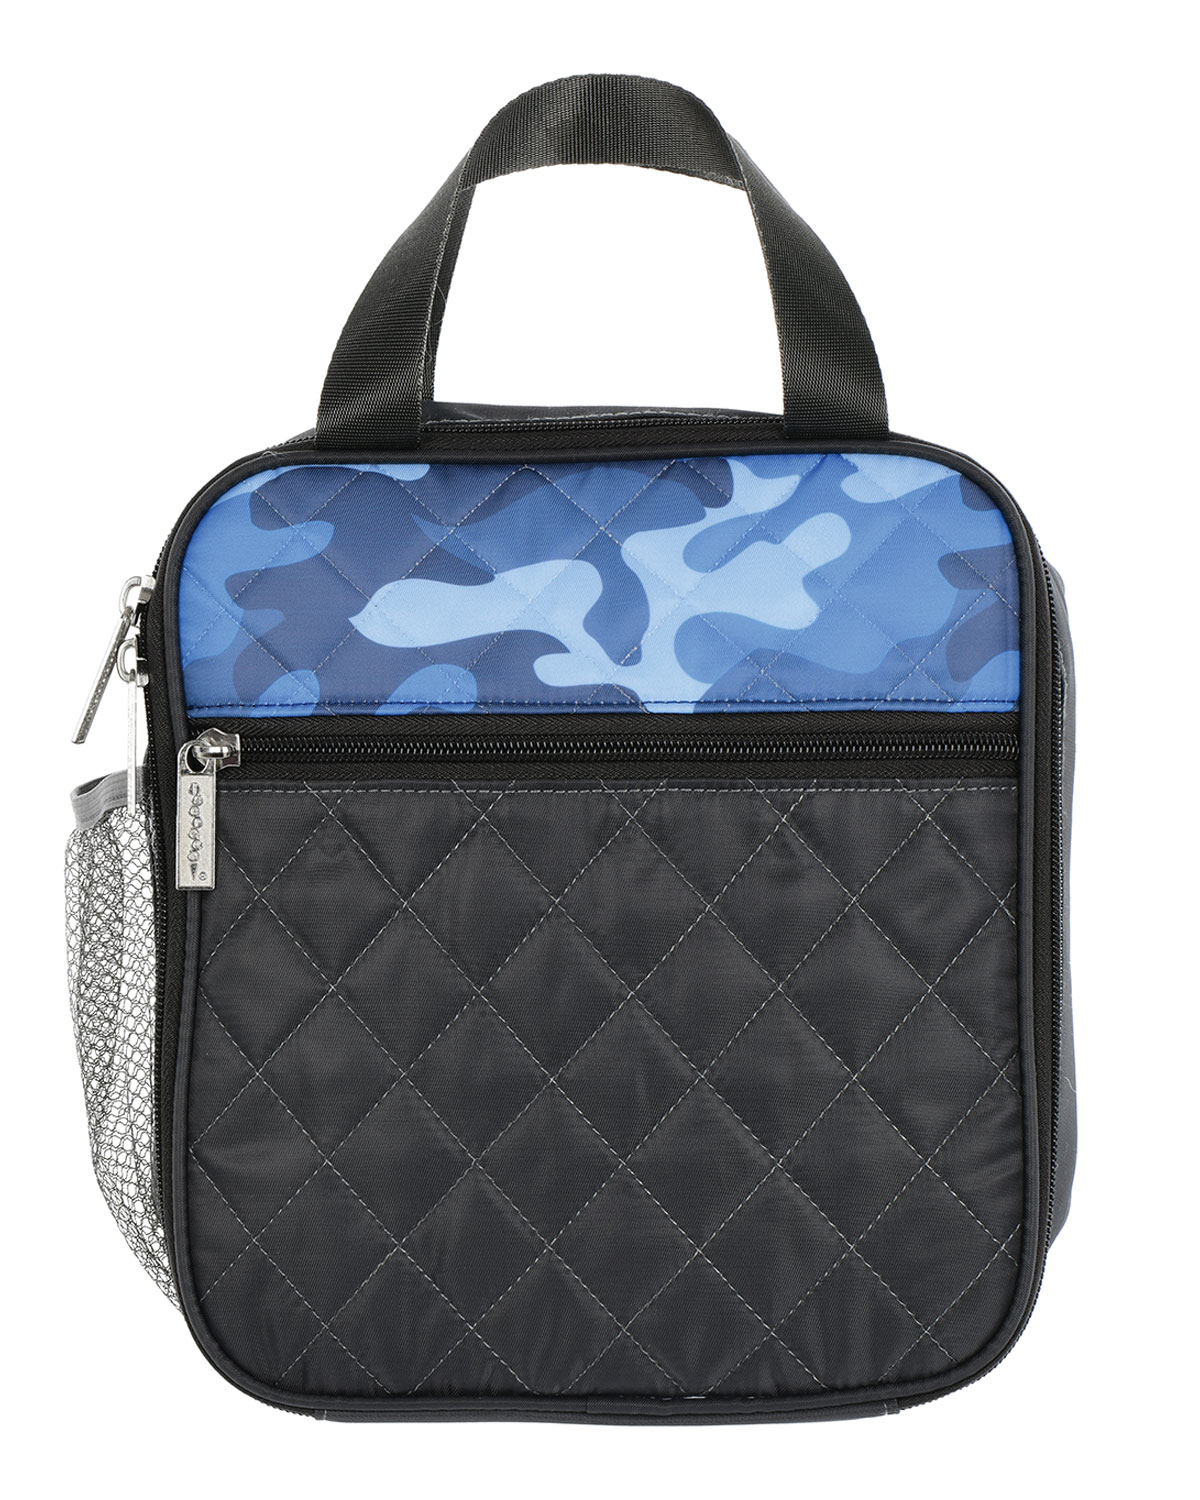 Boy's Camo-Print Faux Leather Lunch Tote